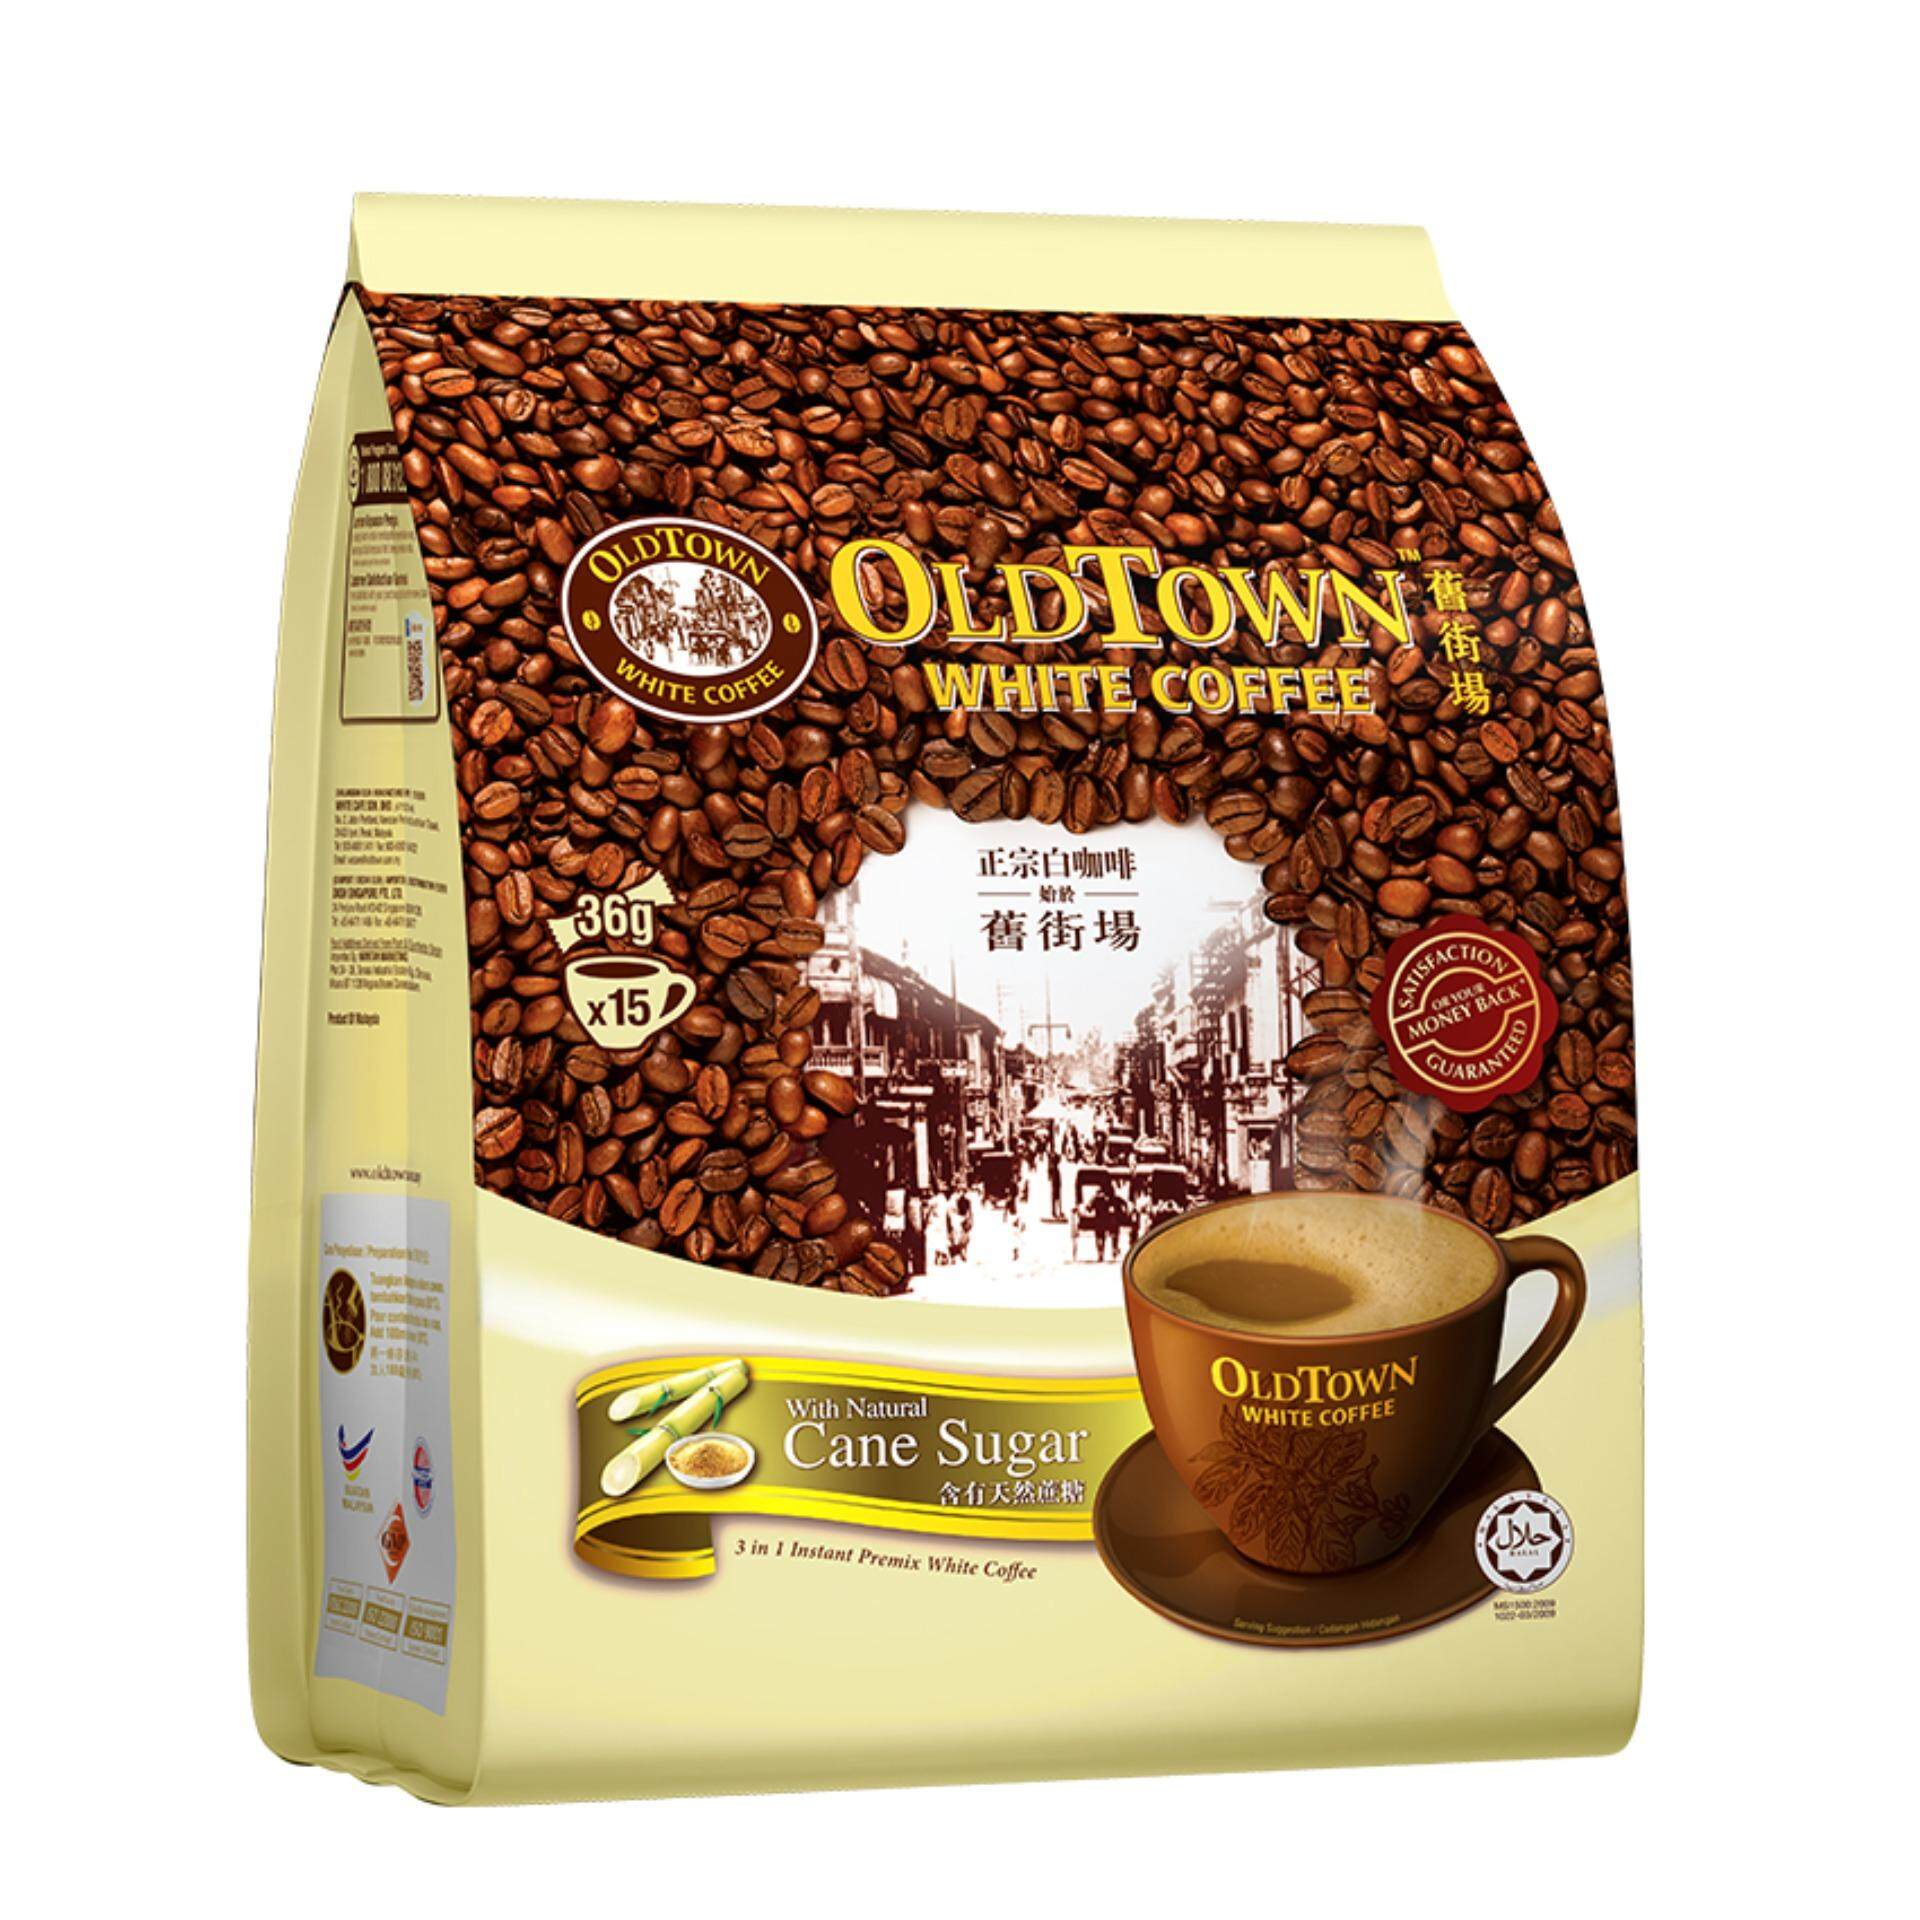 OLDTOWN White Coffee 3-in-1 Natural Cane Sugar Instant Premix White Coffee (15'S X 1 Pack)